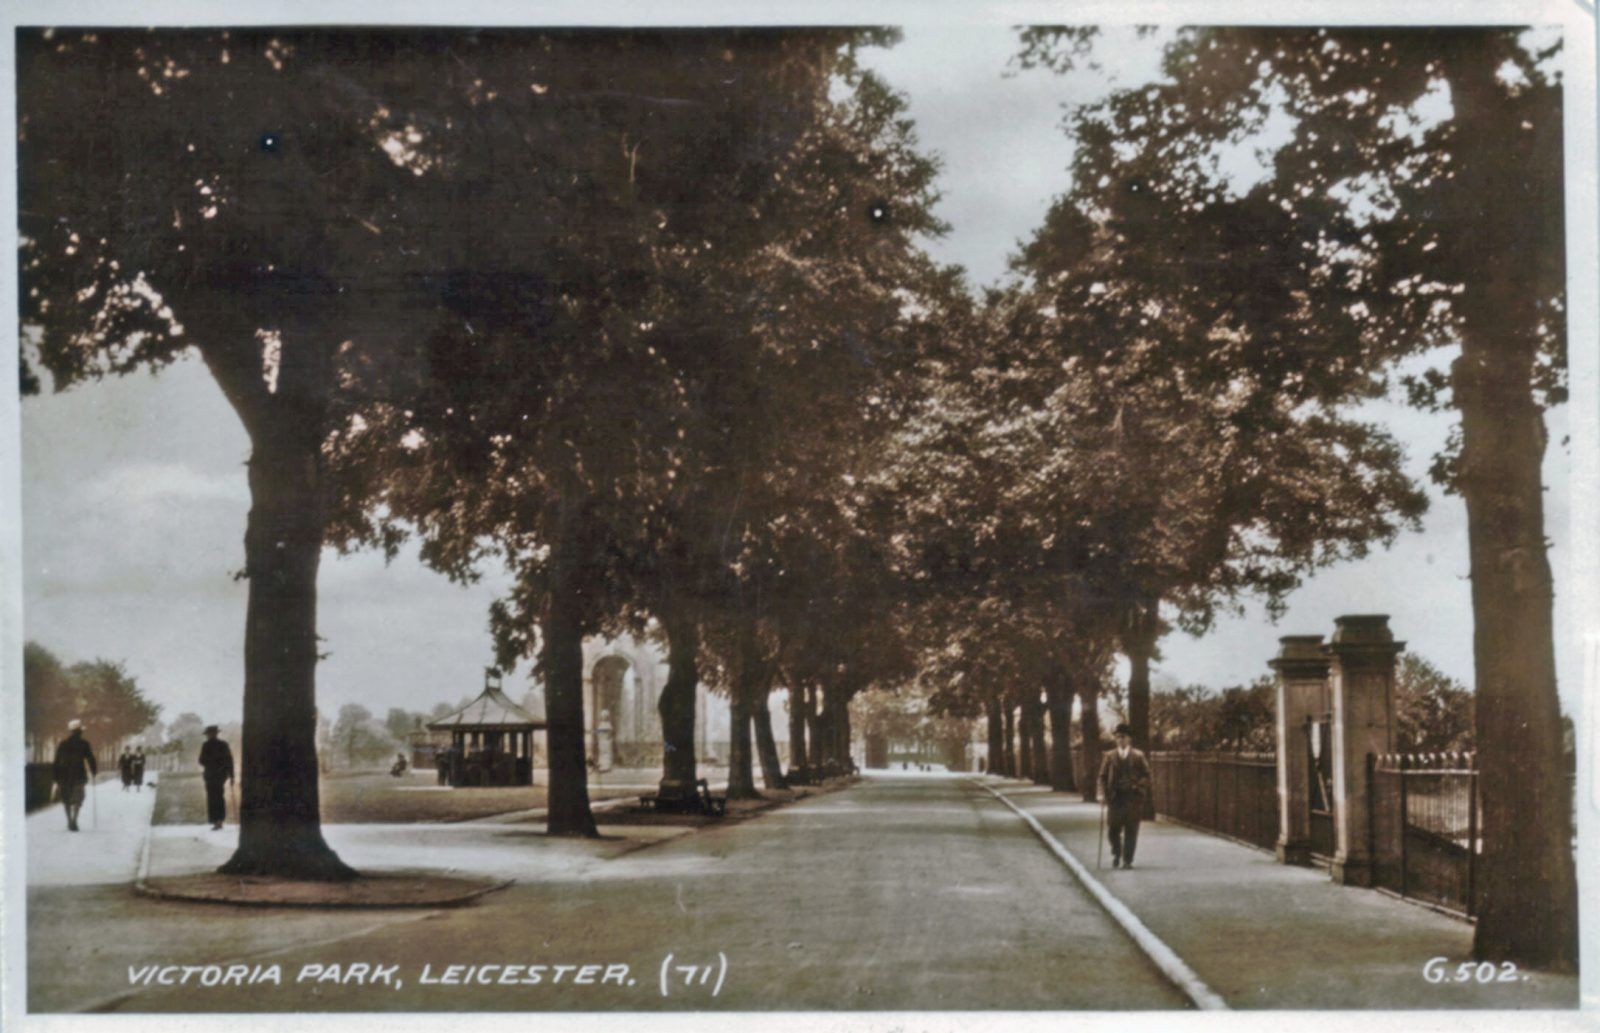 Victoria Park, Leicester. Undated: Broad walk and gazebo. (File:1083)